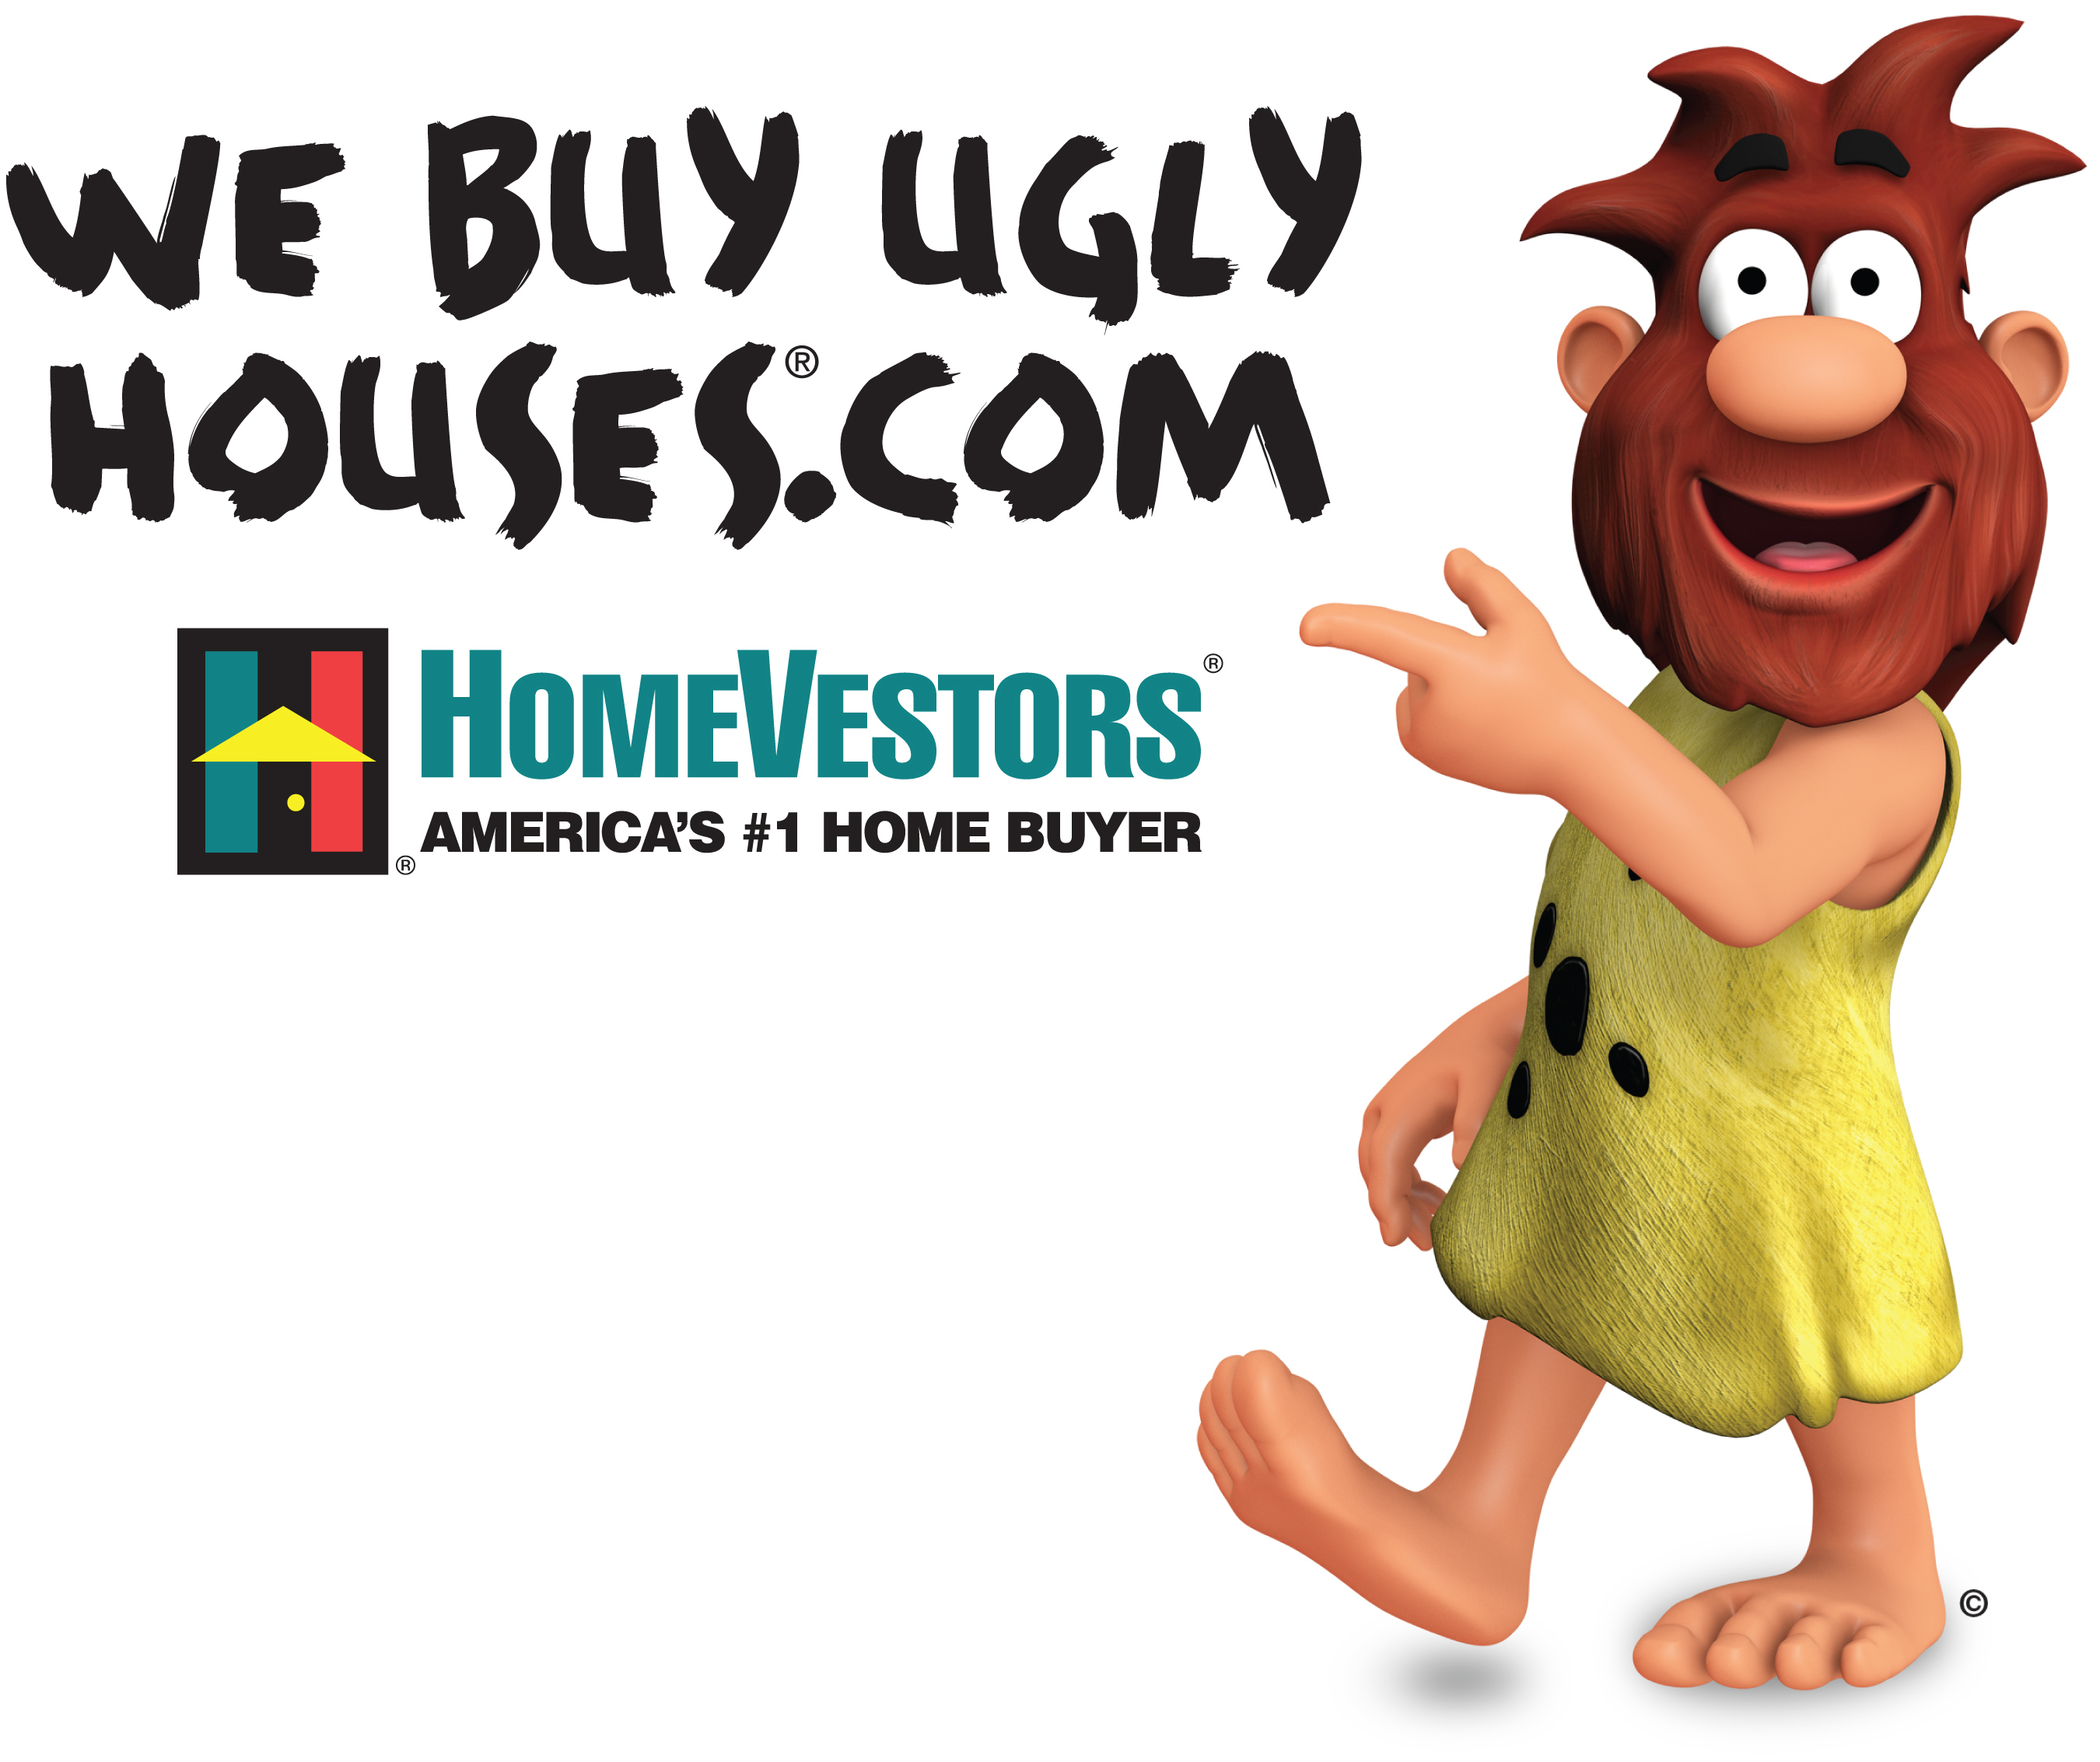 HomeVestors' Growth Pace Through The Roof